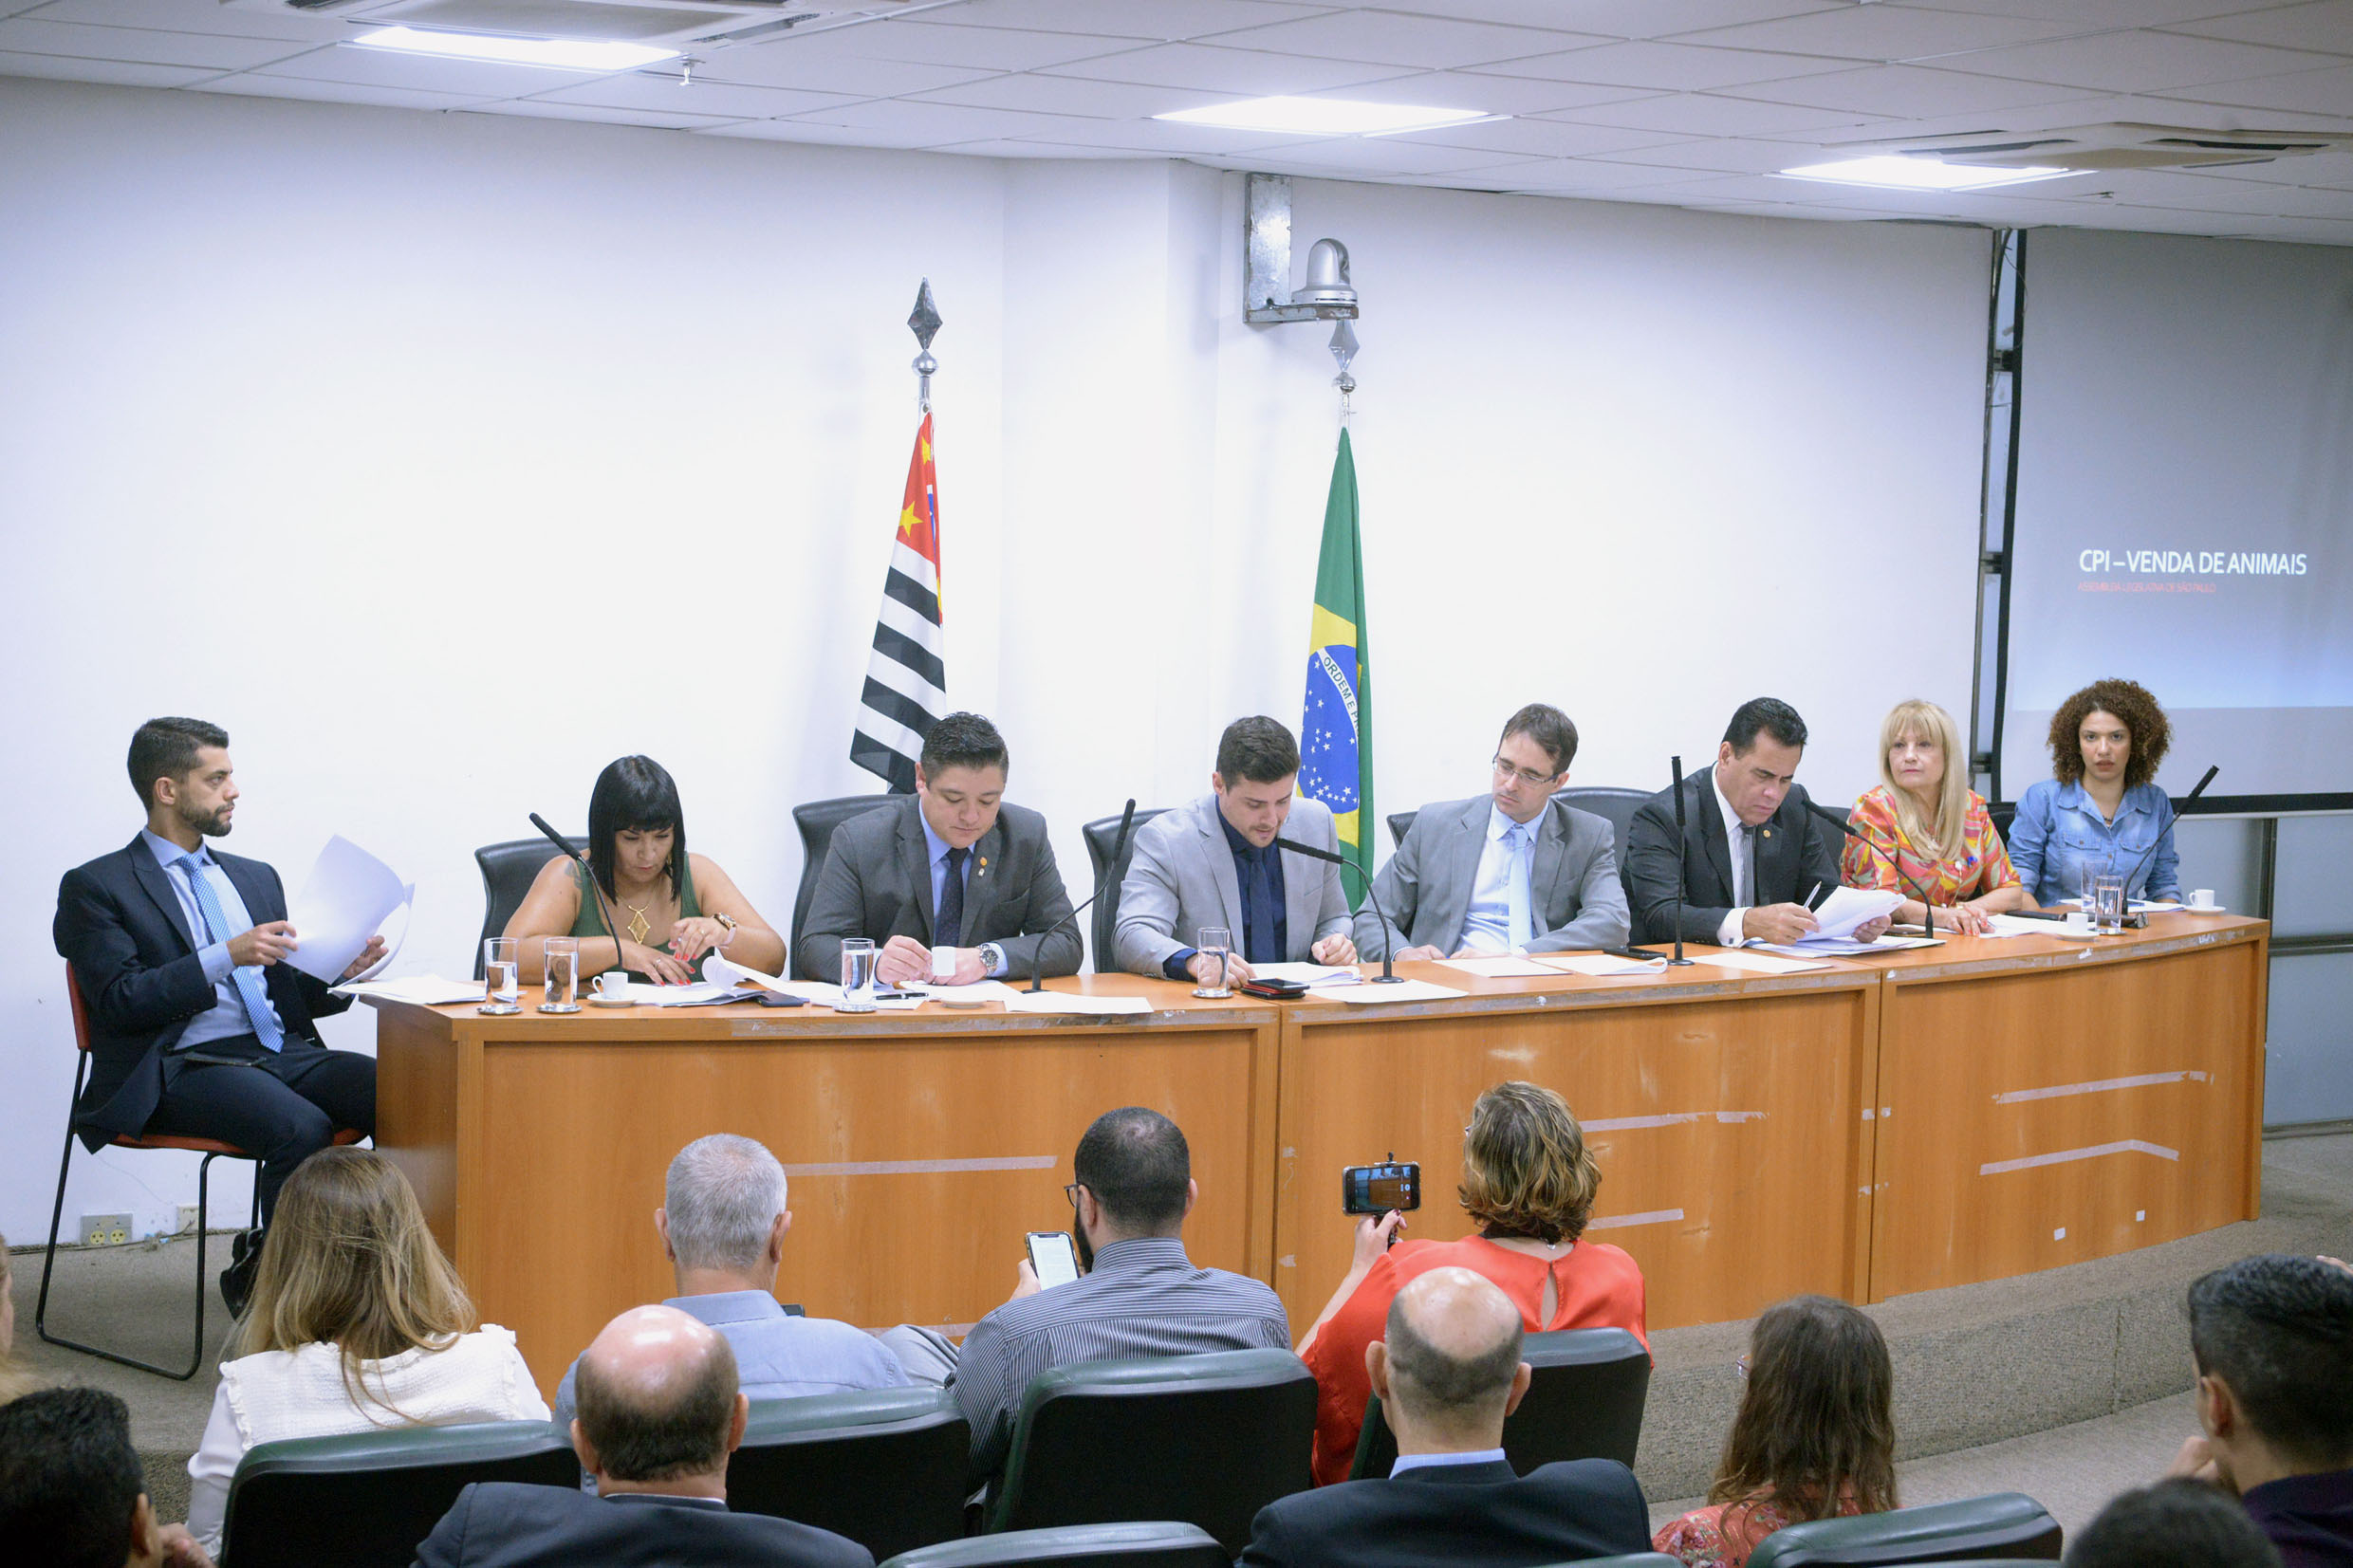 Parlamentares na CPI<a style='float:right' href='https://www3.al.sp.gov.br/repositorio/noticia/N-11-2019/fg243433.jpg' target=_blank><img src='/_img/material-file-download-white.png' width='14px' alt='Clique para baixar a imagem'></a>